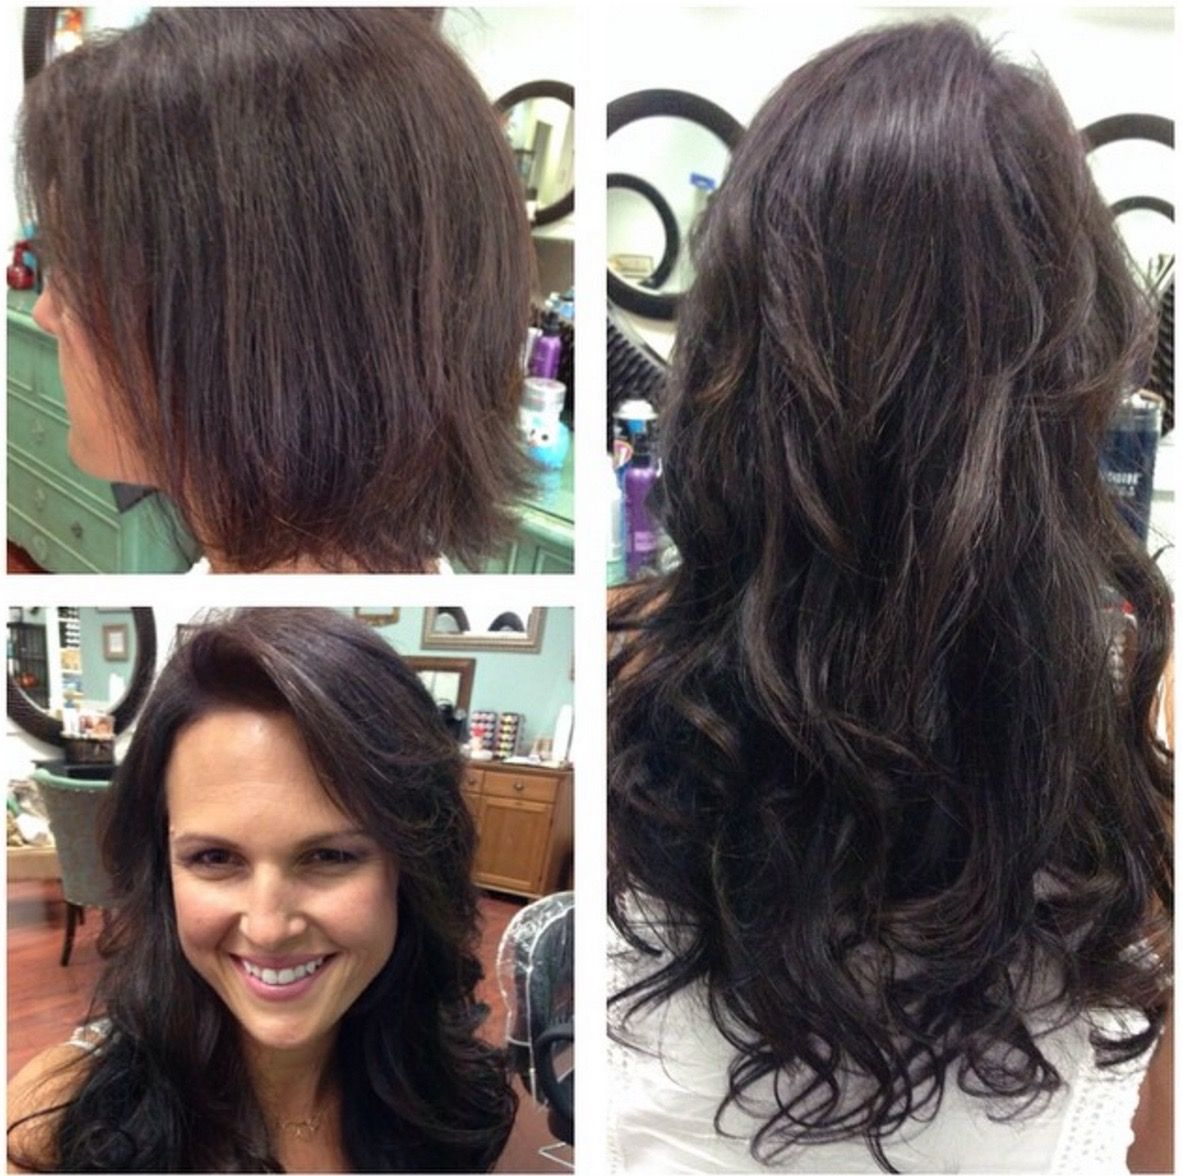 Amazing Before And After Using Glam Seamless Tape In Hair Extensions